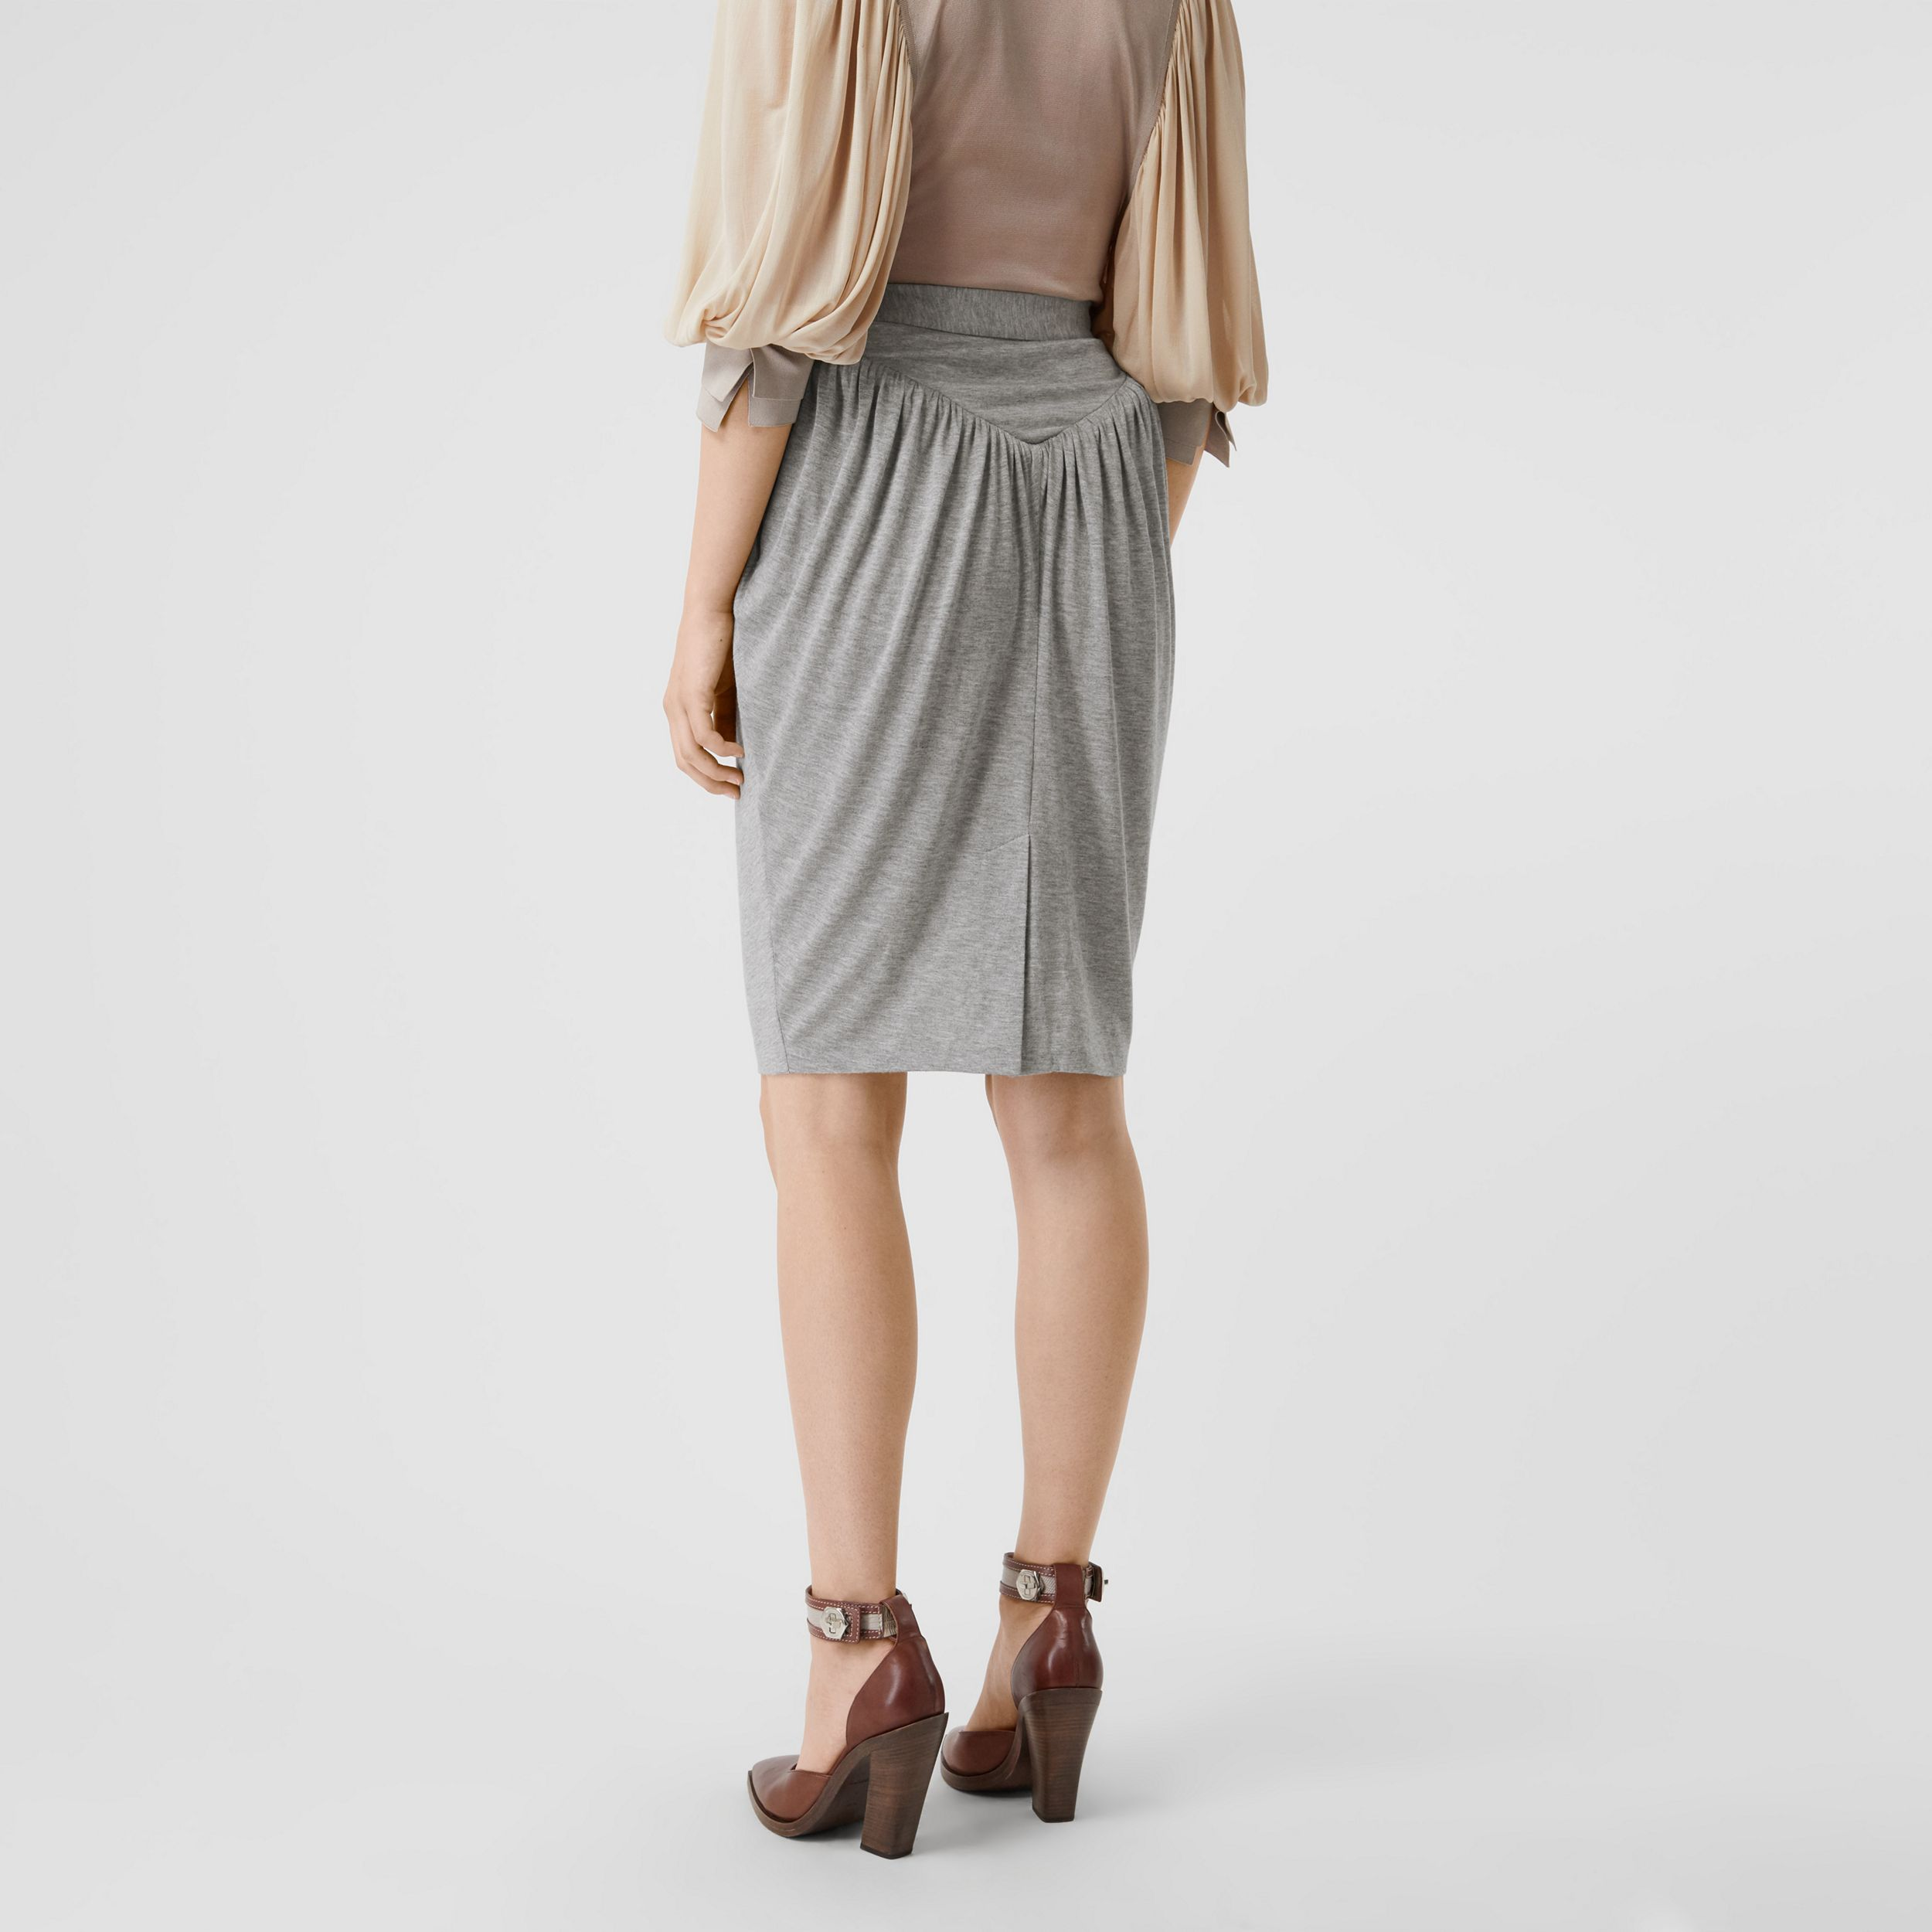 Gathered Jersey Sculptural Skirt in Pewter Melange - Women | Burberry - 3